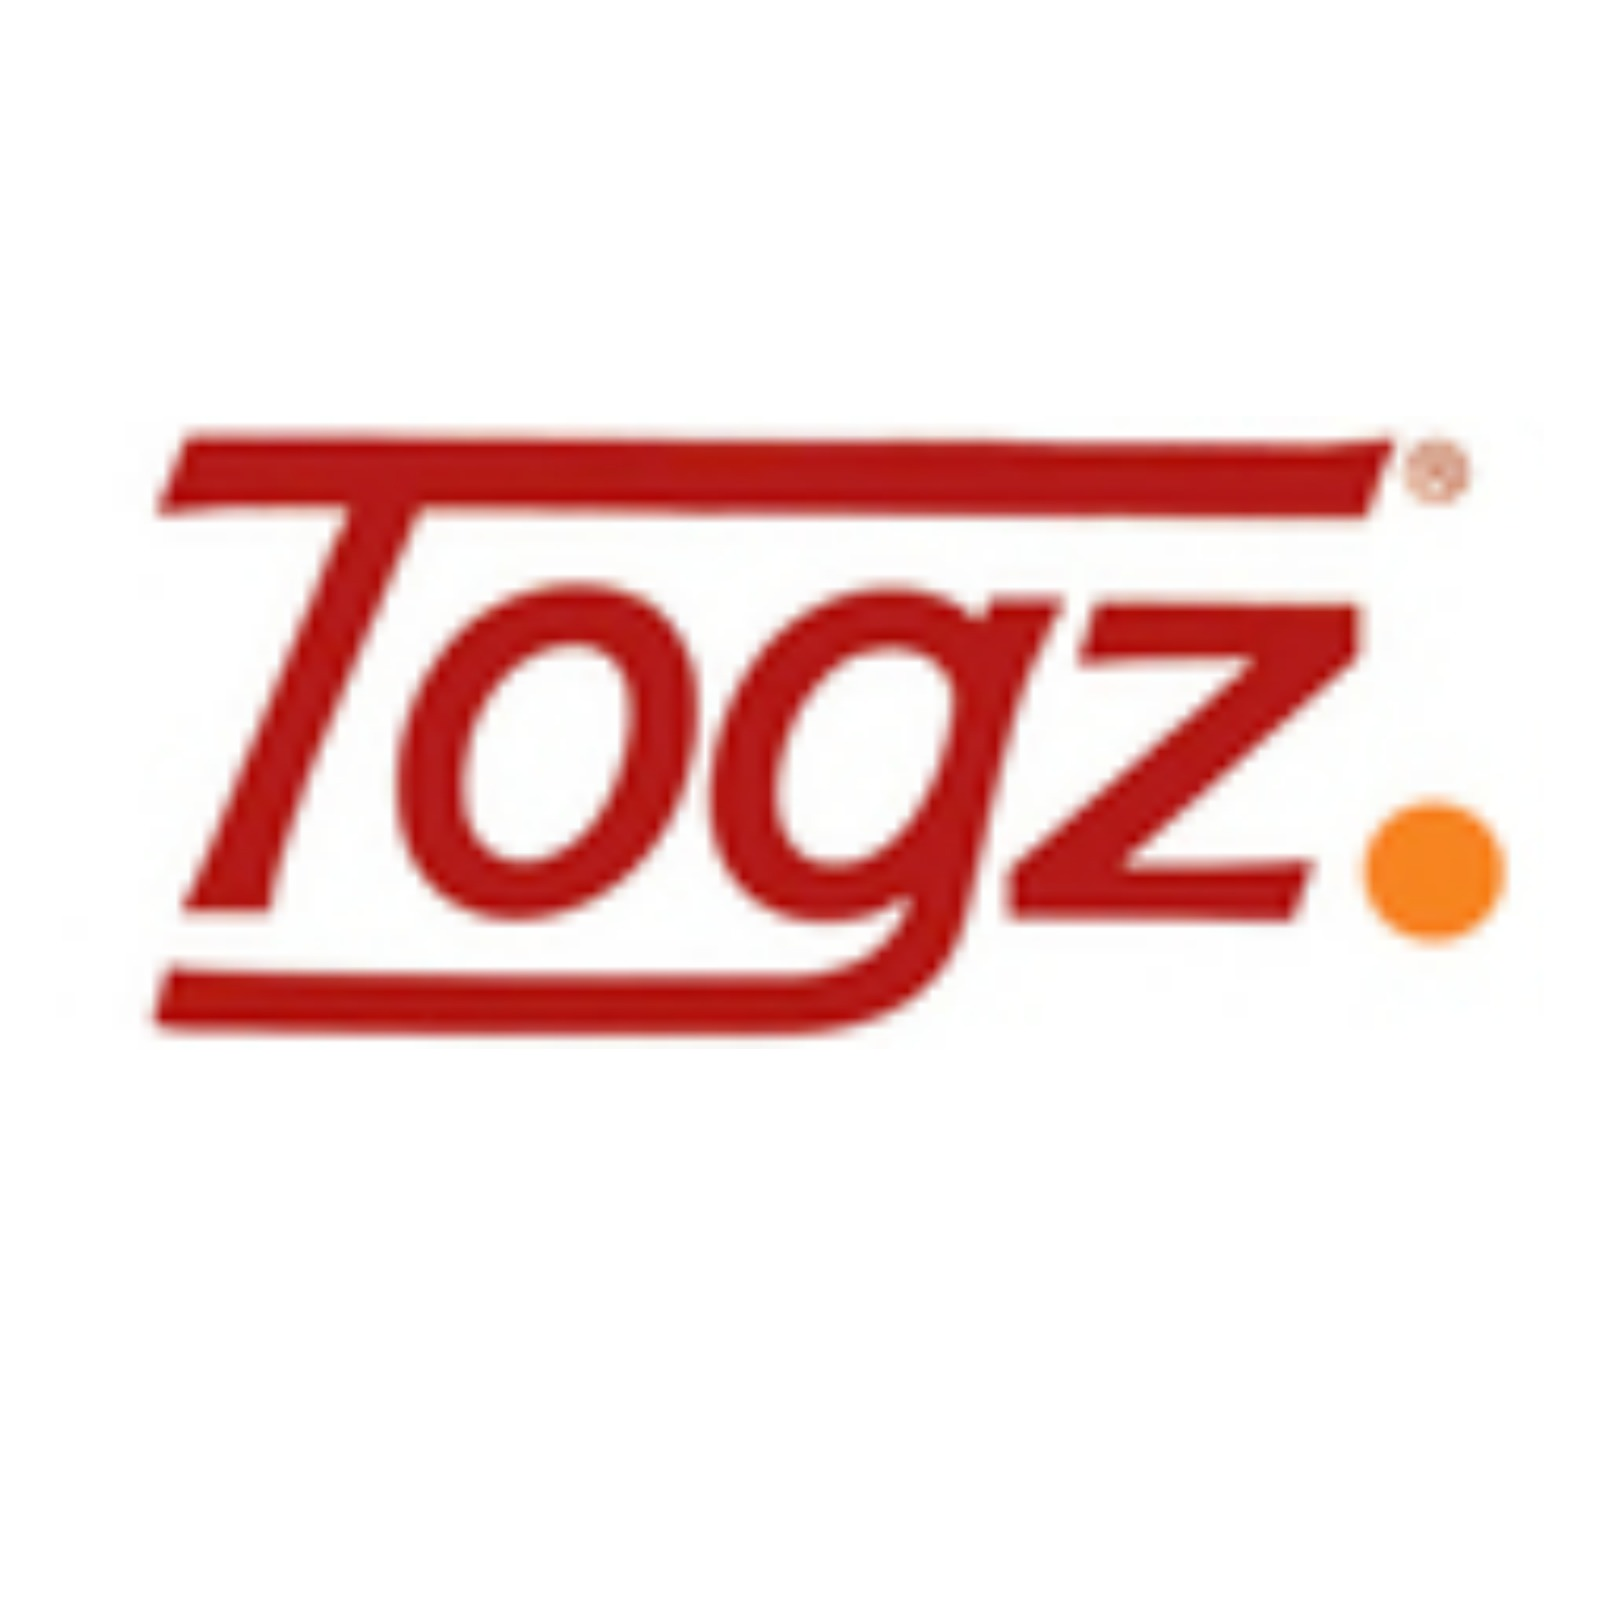 Togz high quality waterproof clothing from trousers, jackets to all in one suits